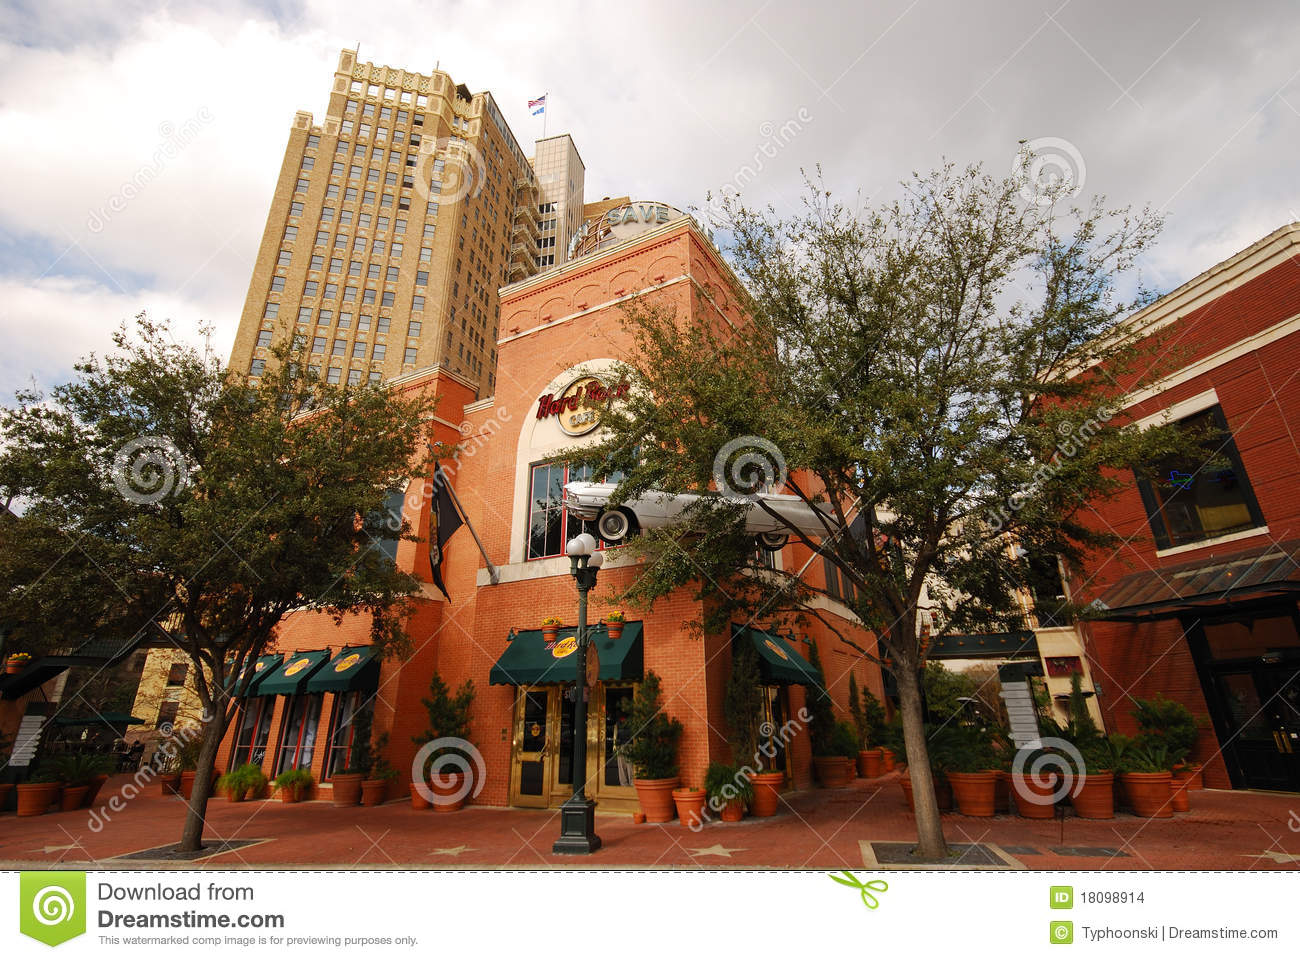 Hard Rock Cafe San Antonio San Antonio Tx United States